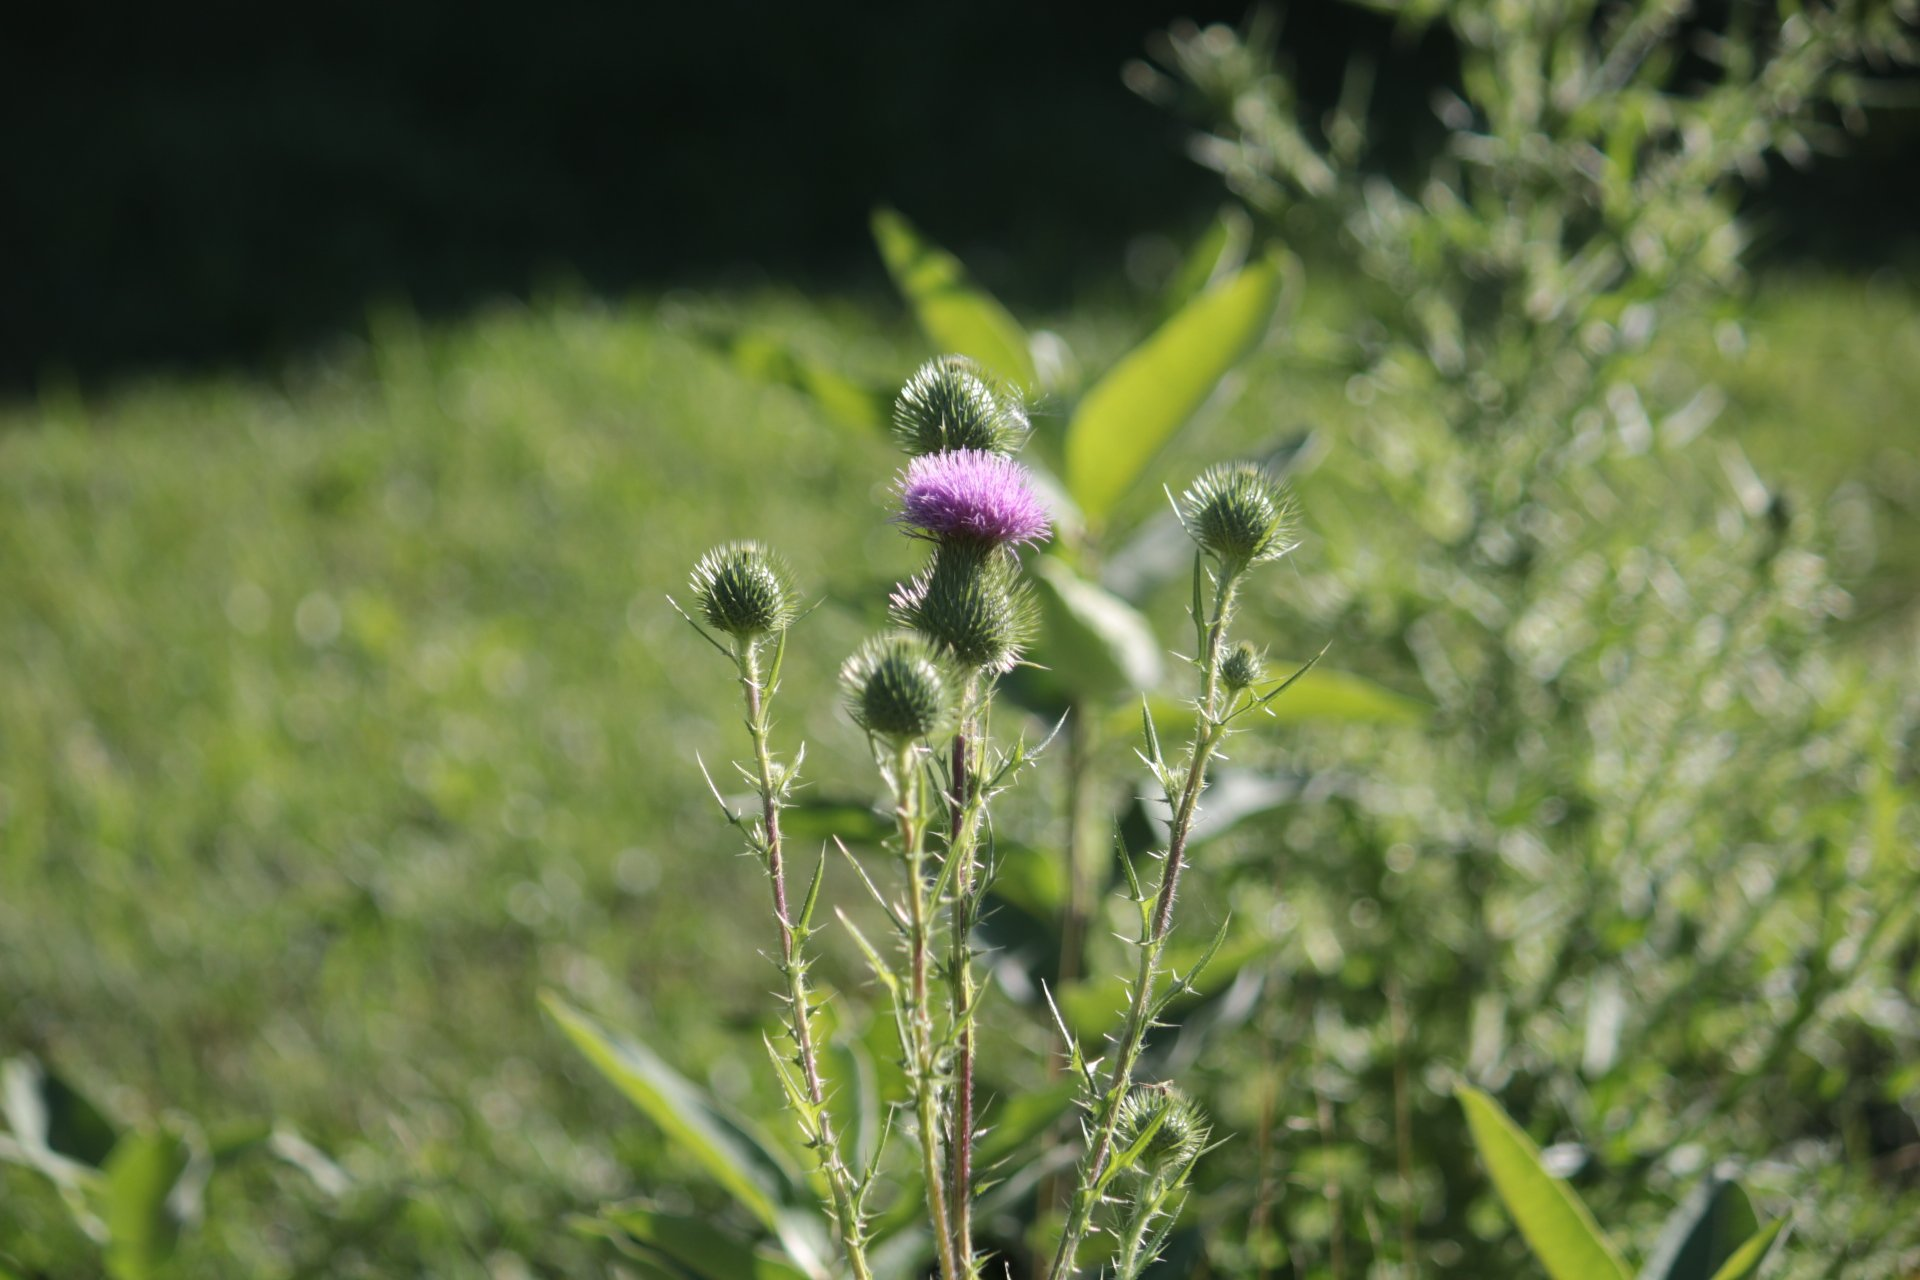 thistle plant with one head blooming